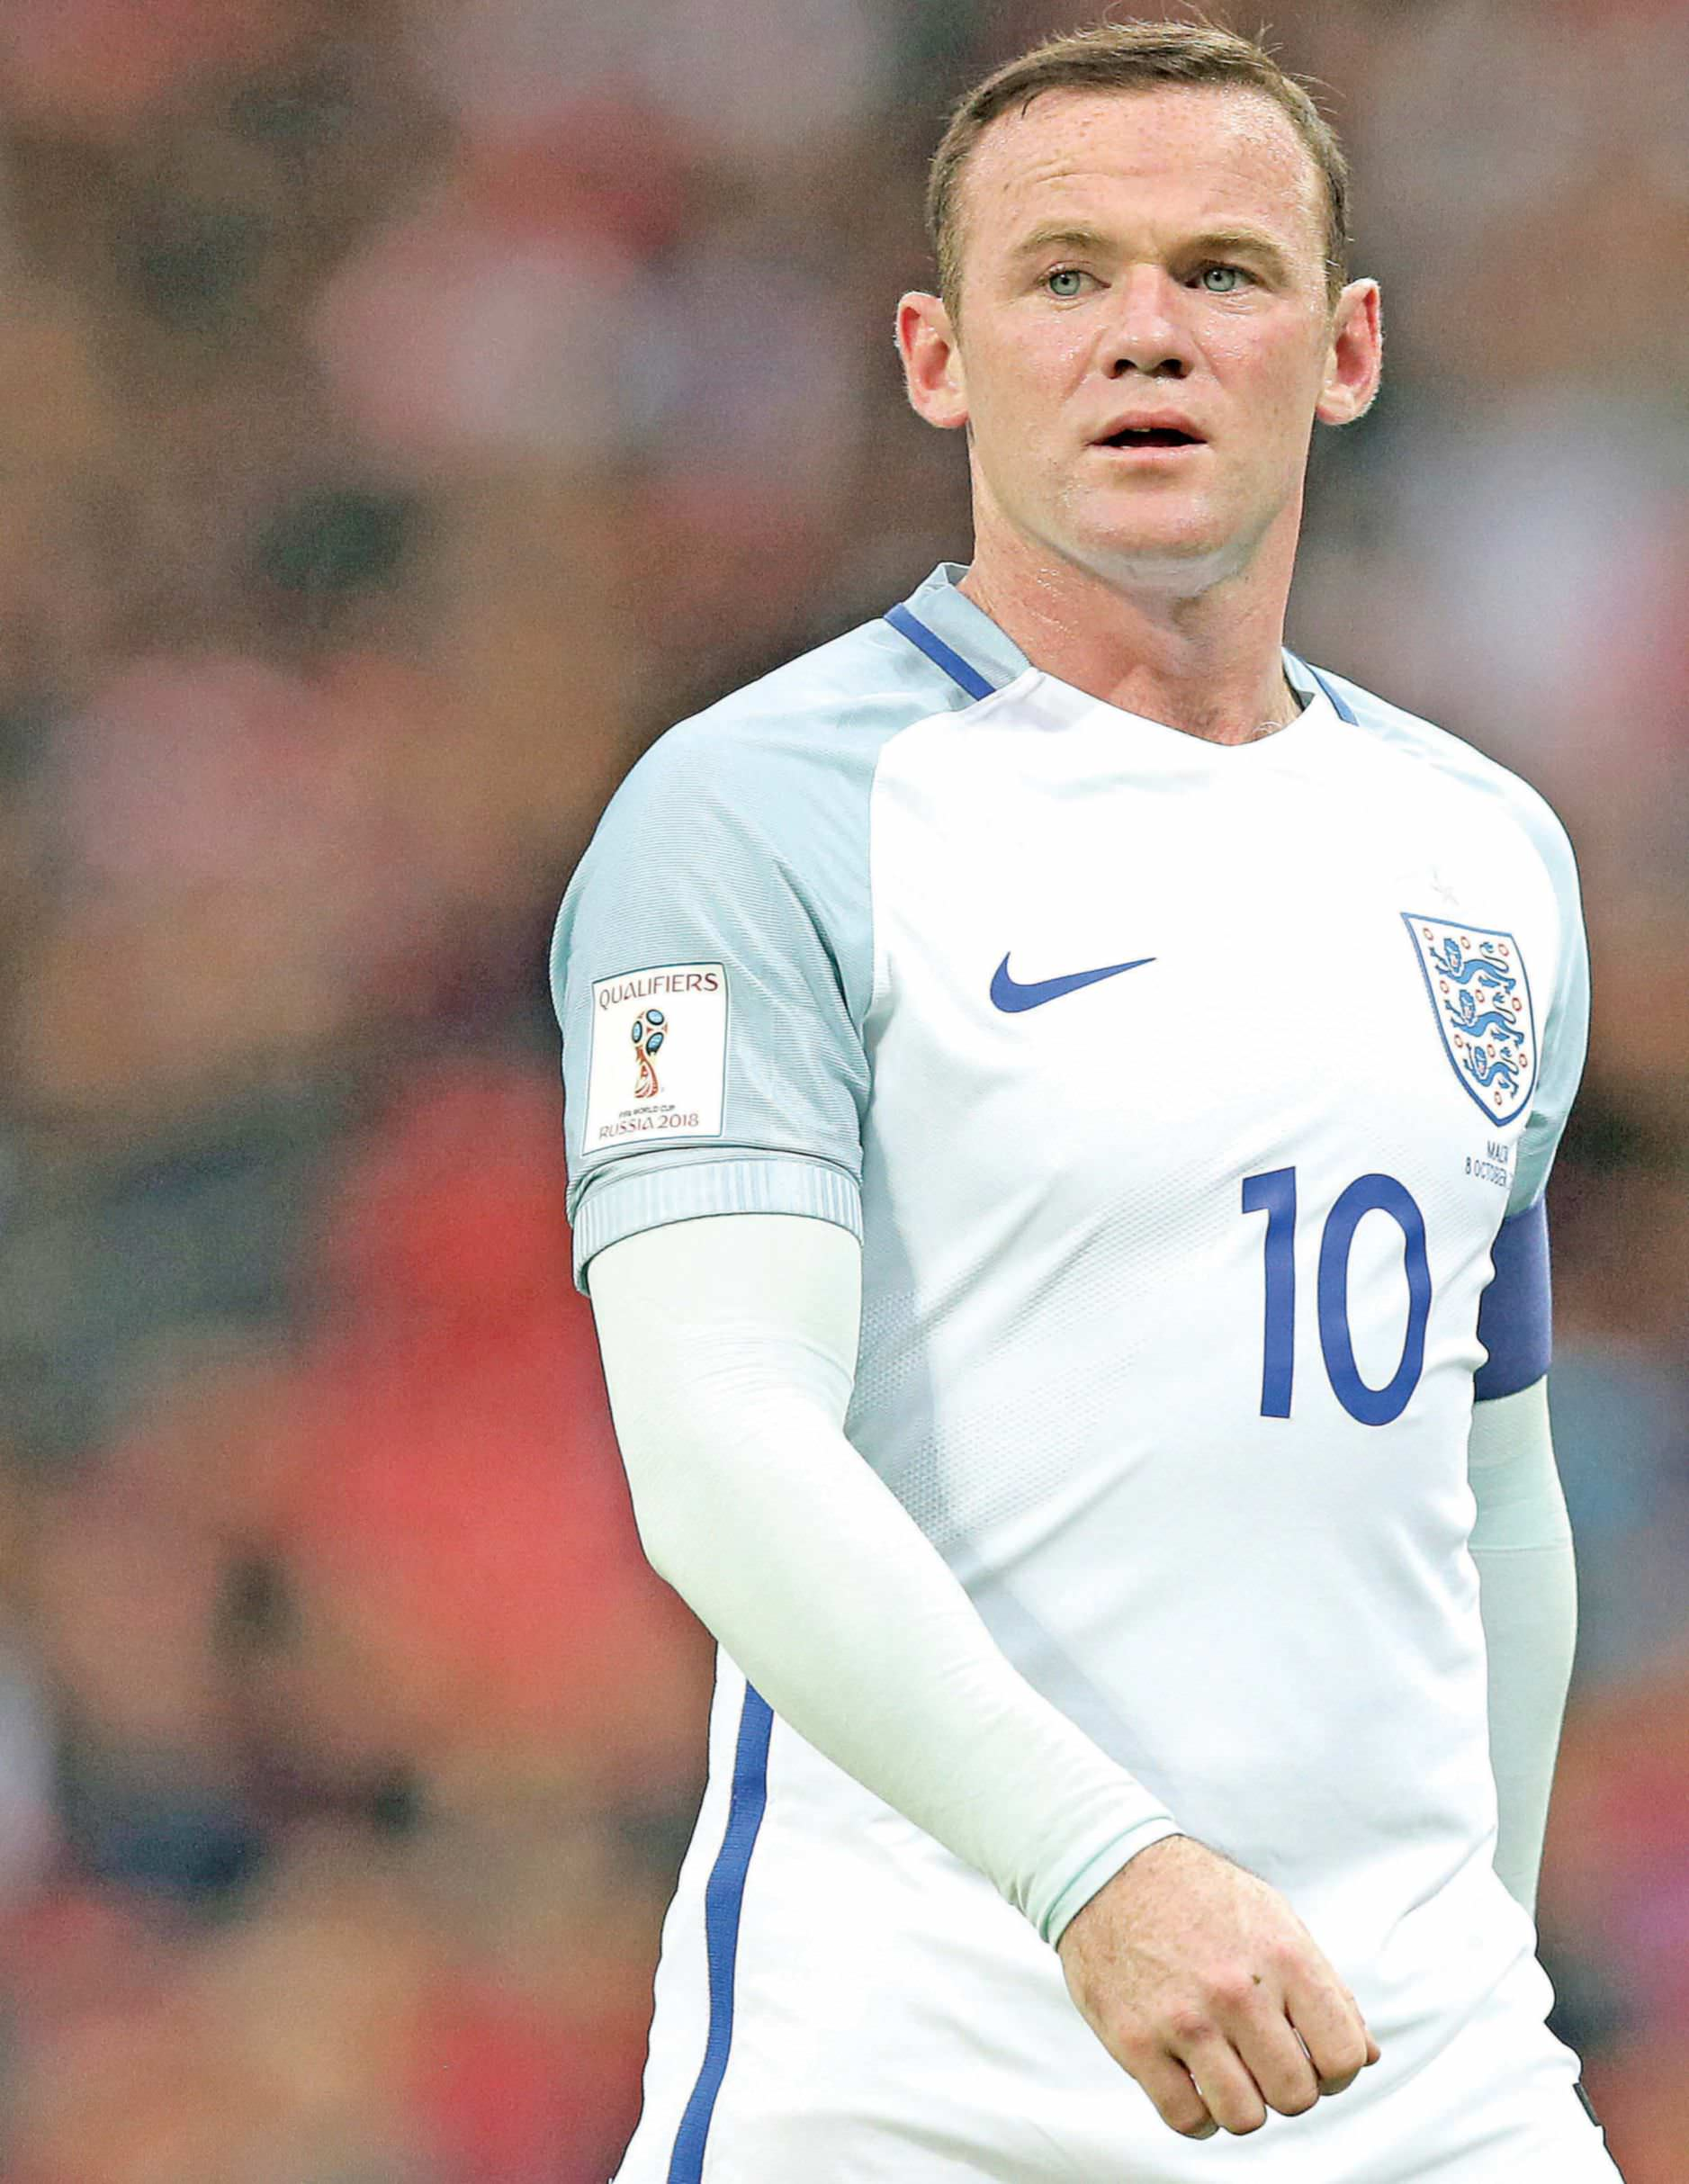 Wayne Rooney The Beginning of the End